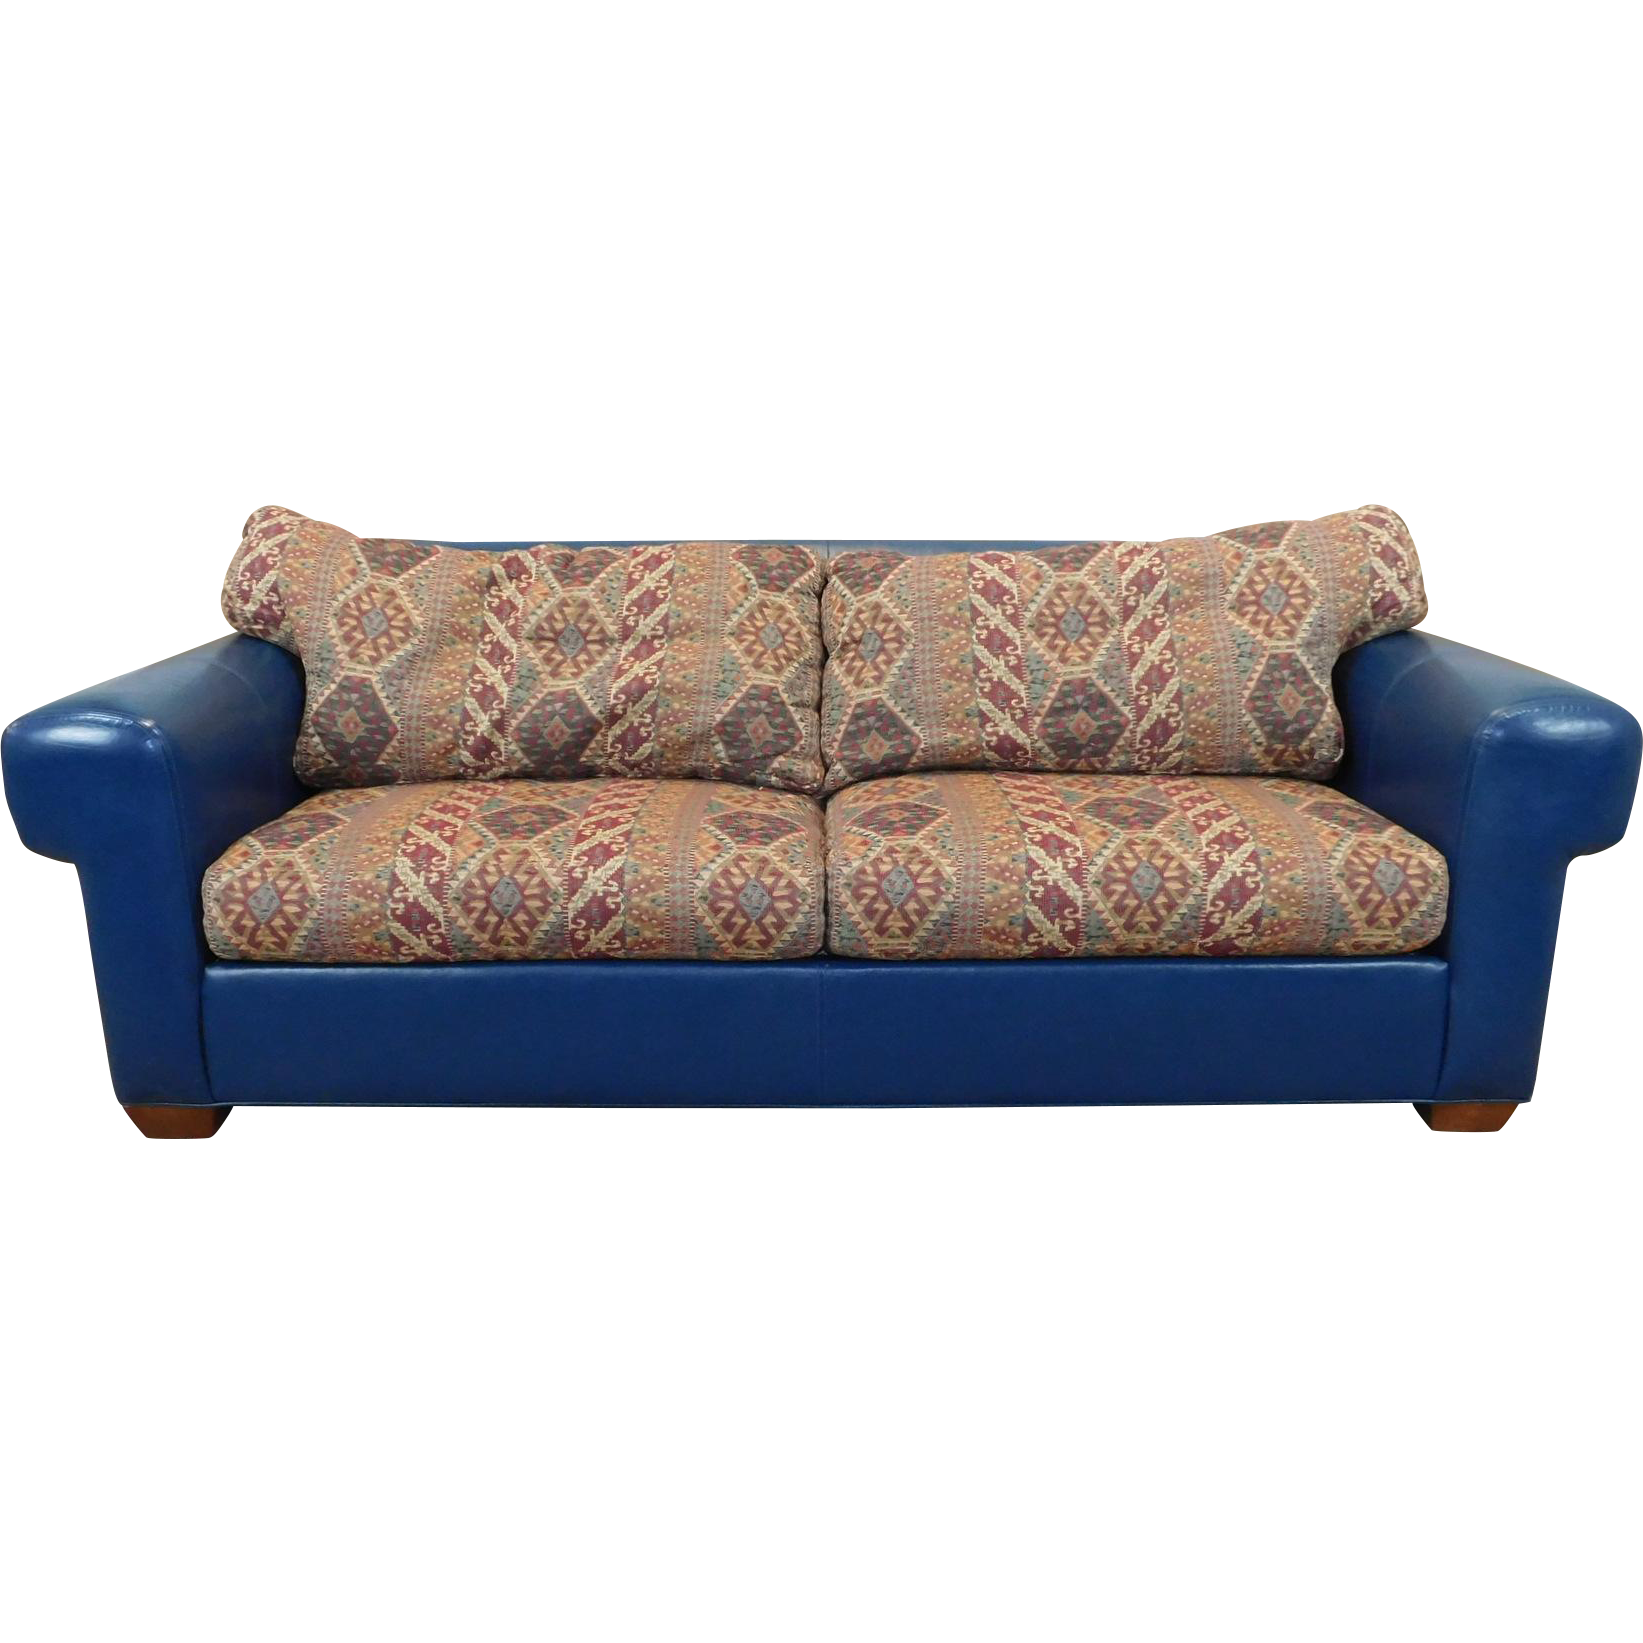 Comfortable Blue Leather Upholstered Ethan Allen